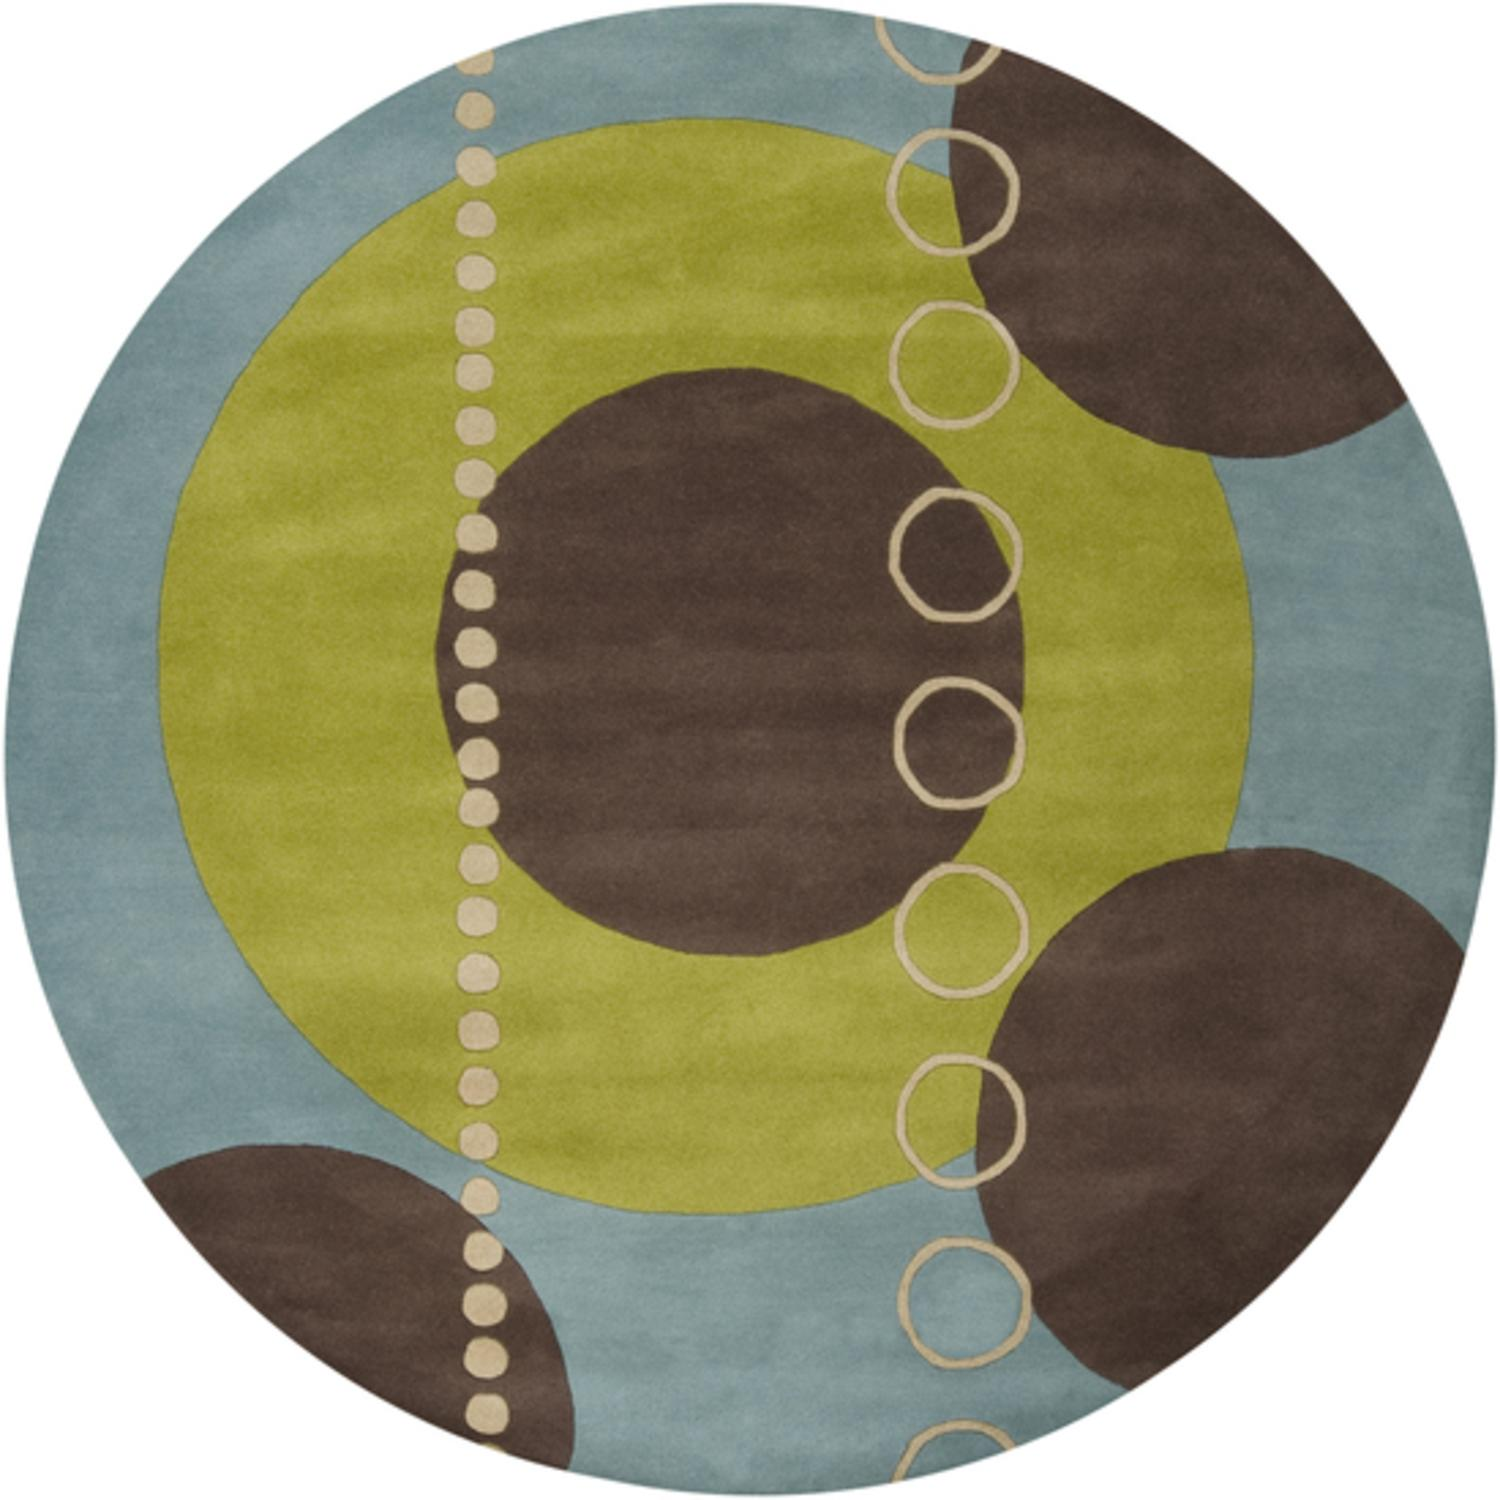 6' Round Eclectic Immersion Moss Green and Blue Wool Area Throw Rug